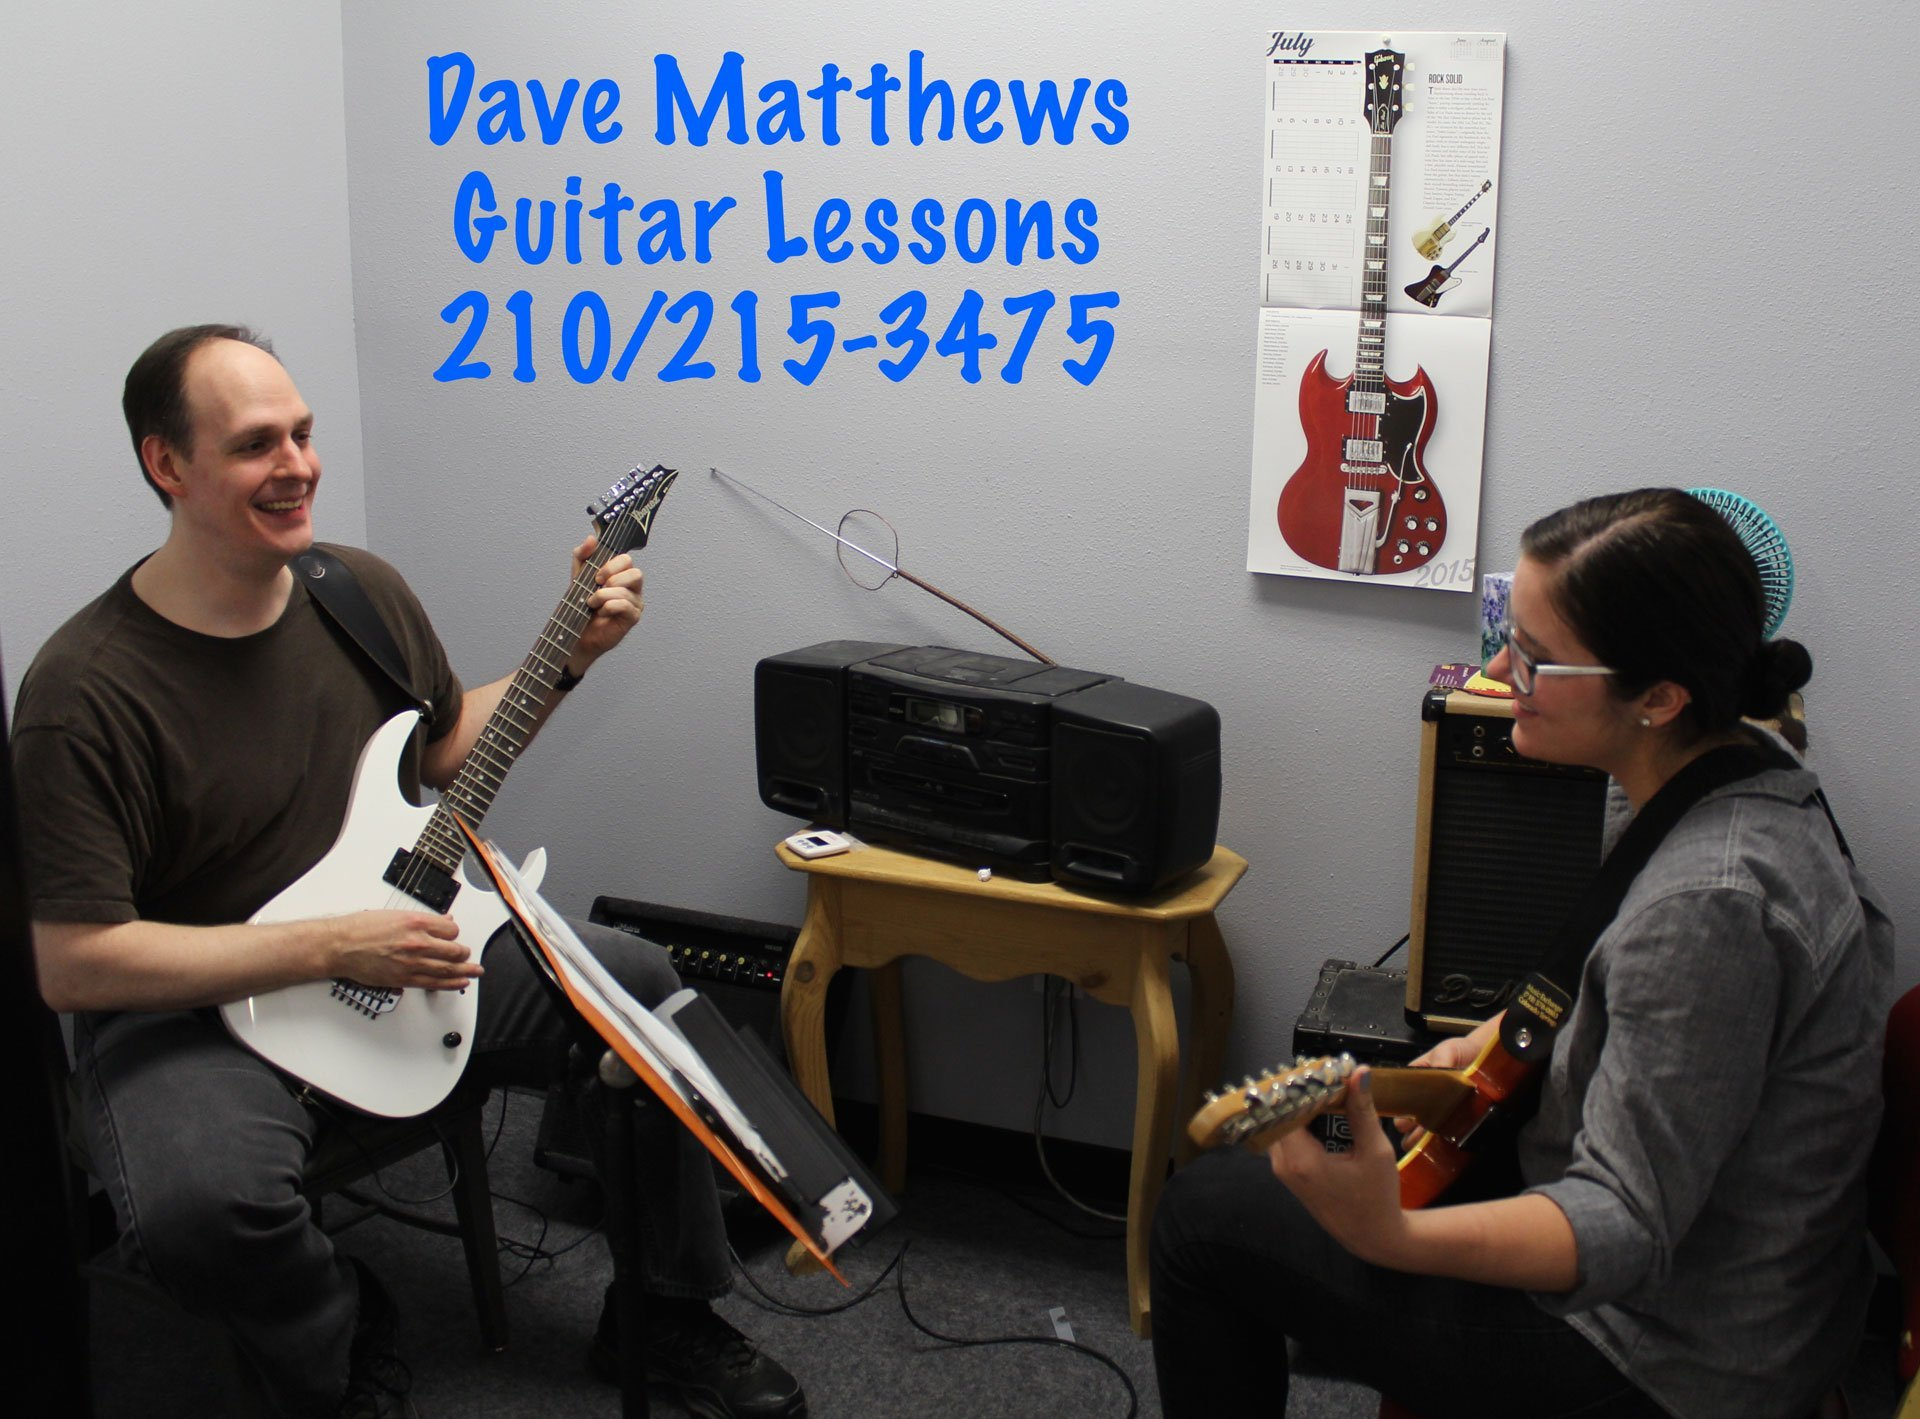 Dave Matthews - Guitar Lessons